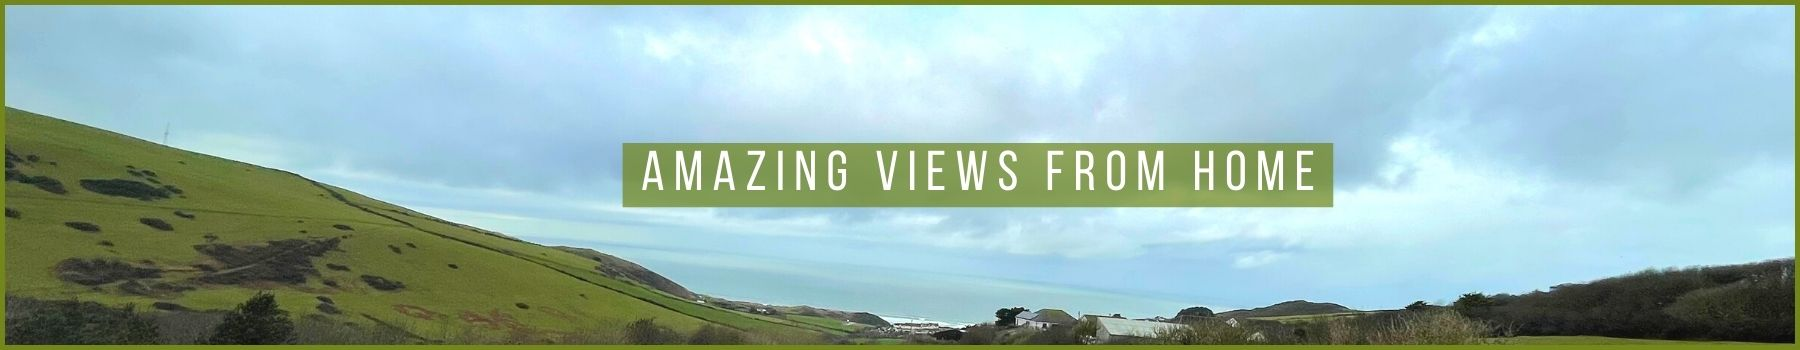 Amazing Views from Home Banner